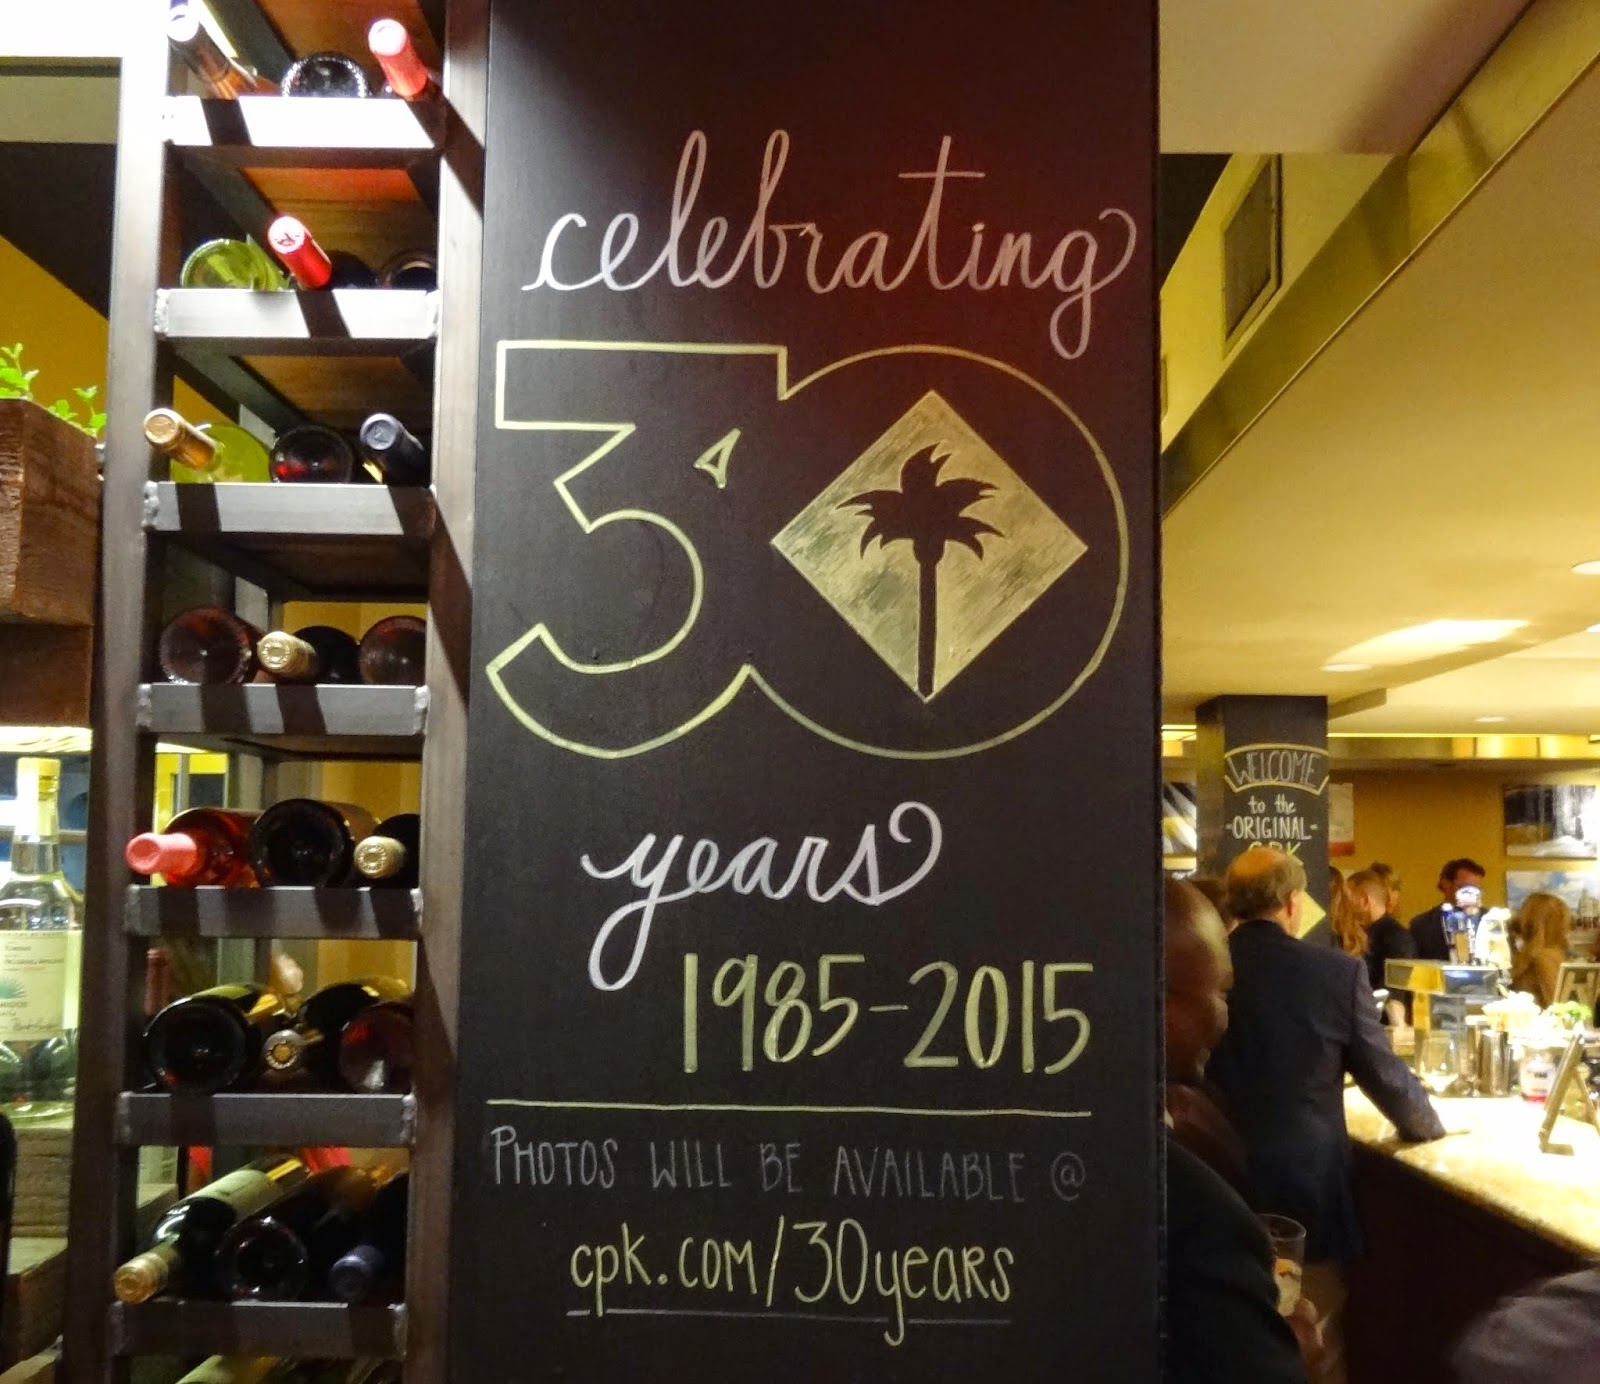 jay eats worldwide california pizza kitchen celebrates 30 years